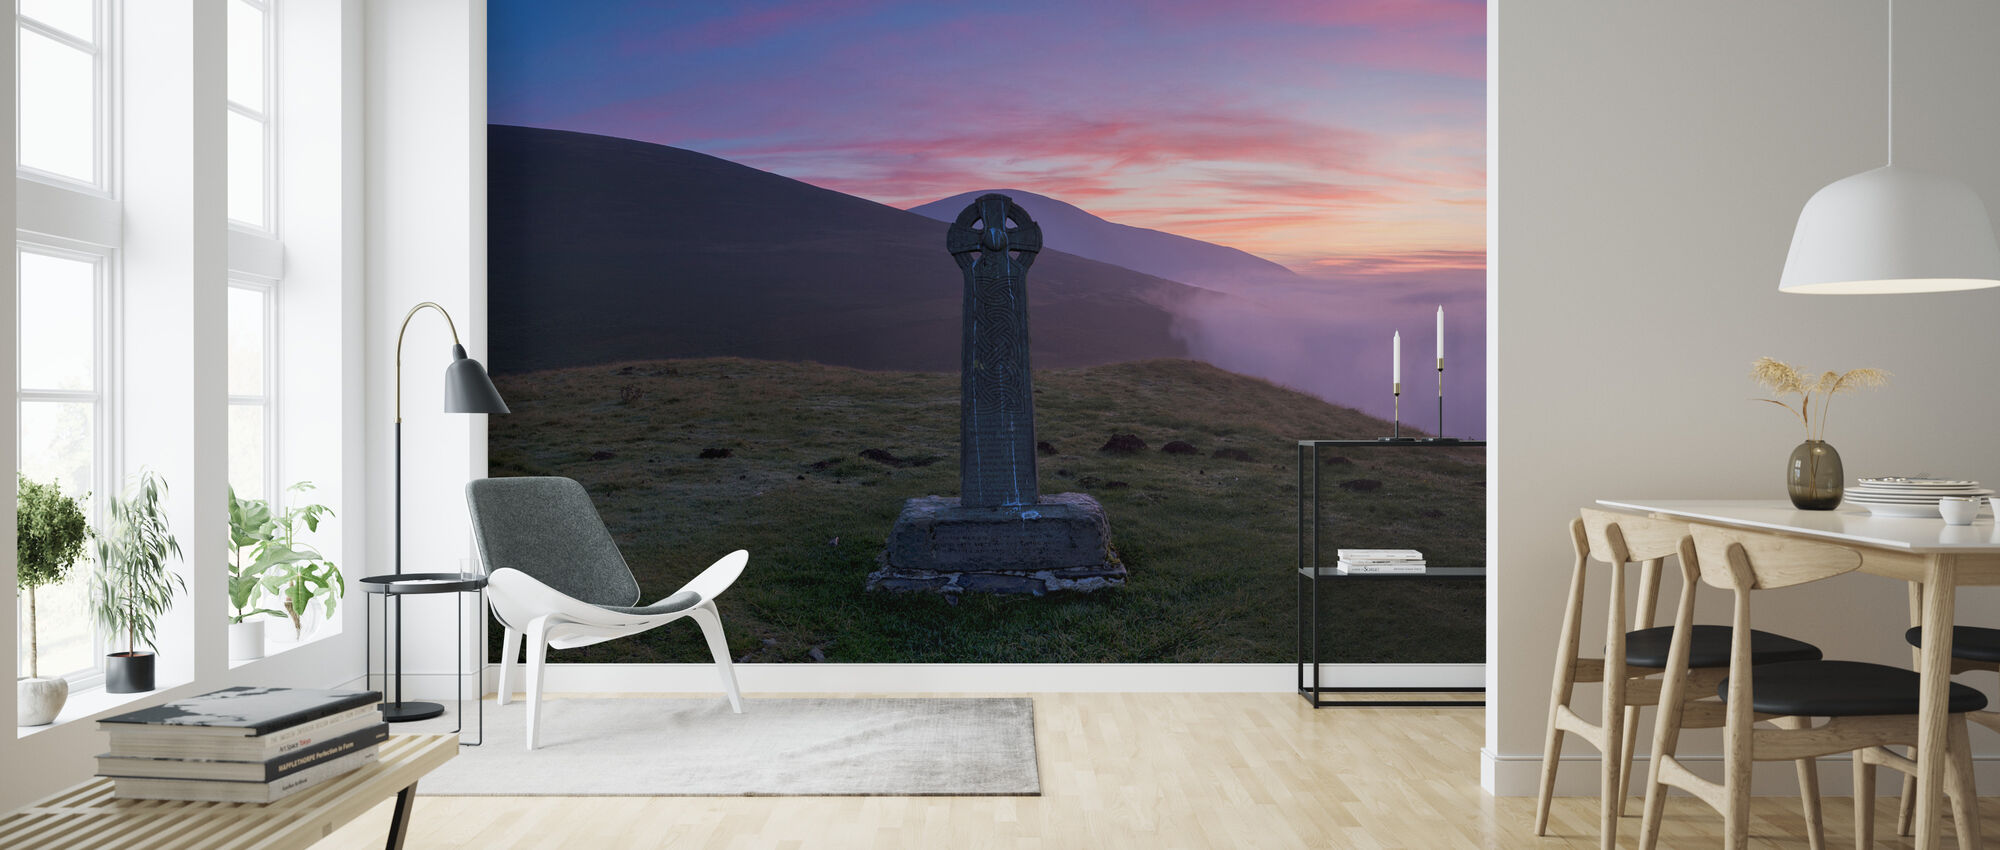 Skiddaw Shepherds Monument - Wallpaper - Living Room